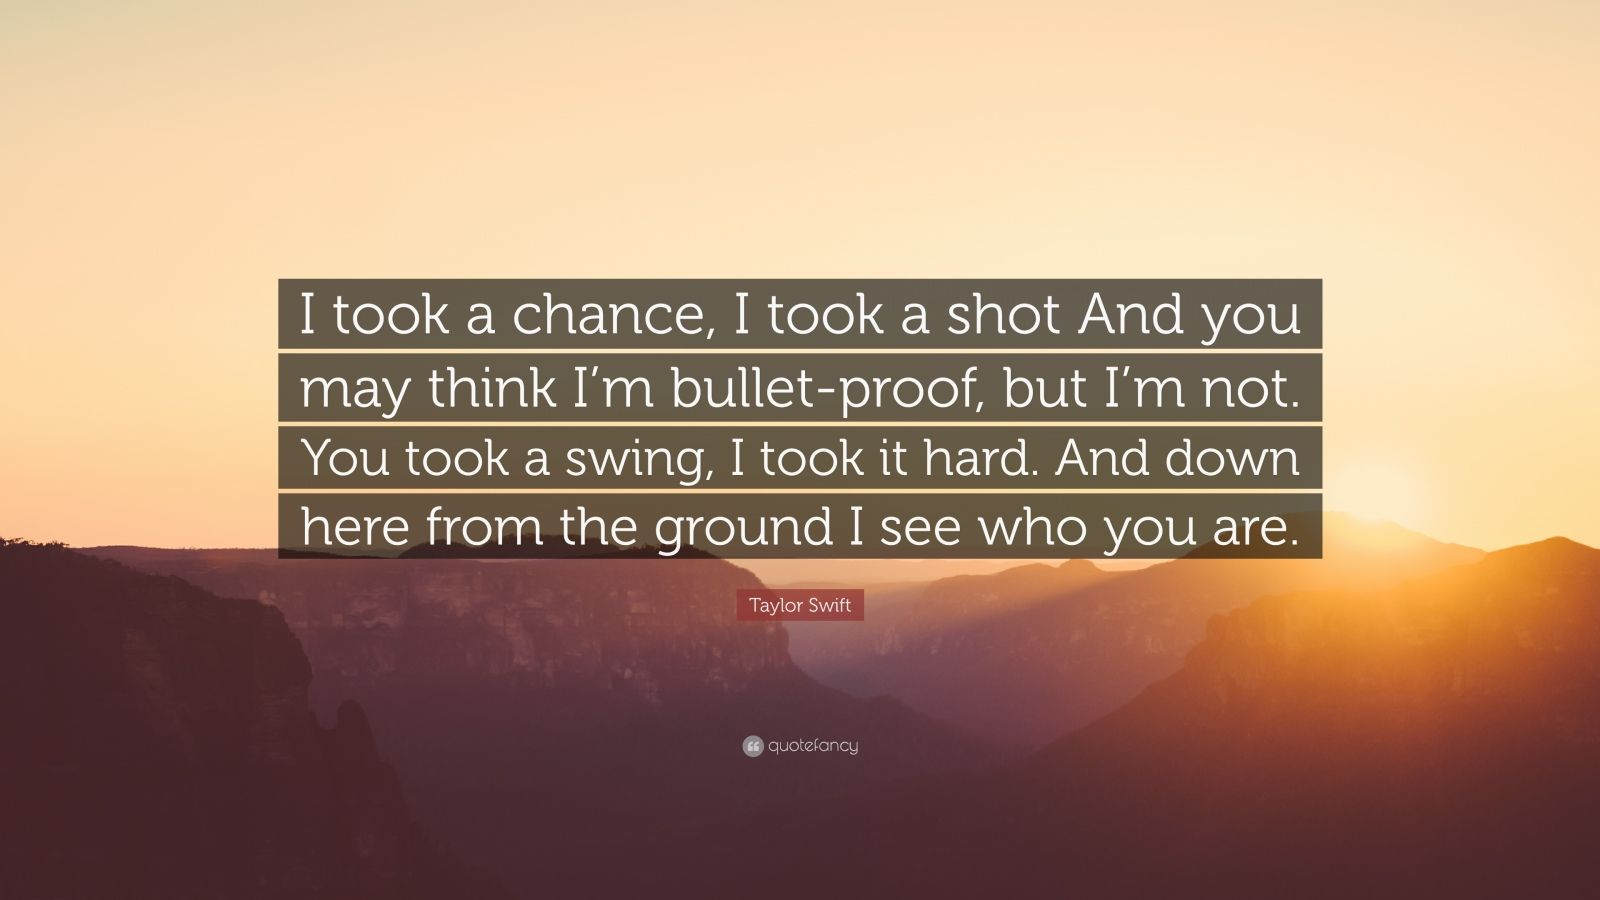 "Taylor Swift Quote: ""I took a chance, I took a shot And you may think I'm bullet-proof, but I'm not. You took a swing, I took it hard. And down here from the ground I see who you are."""